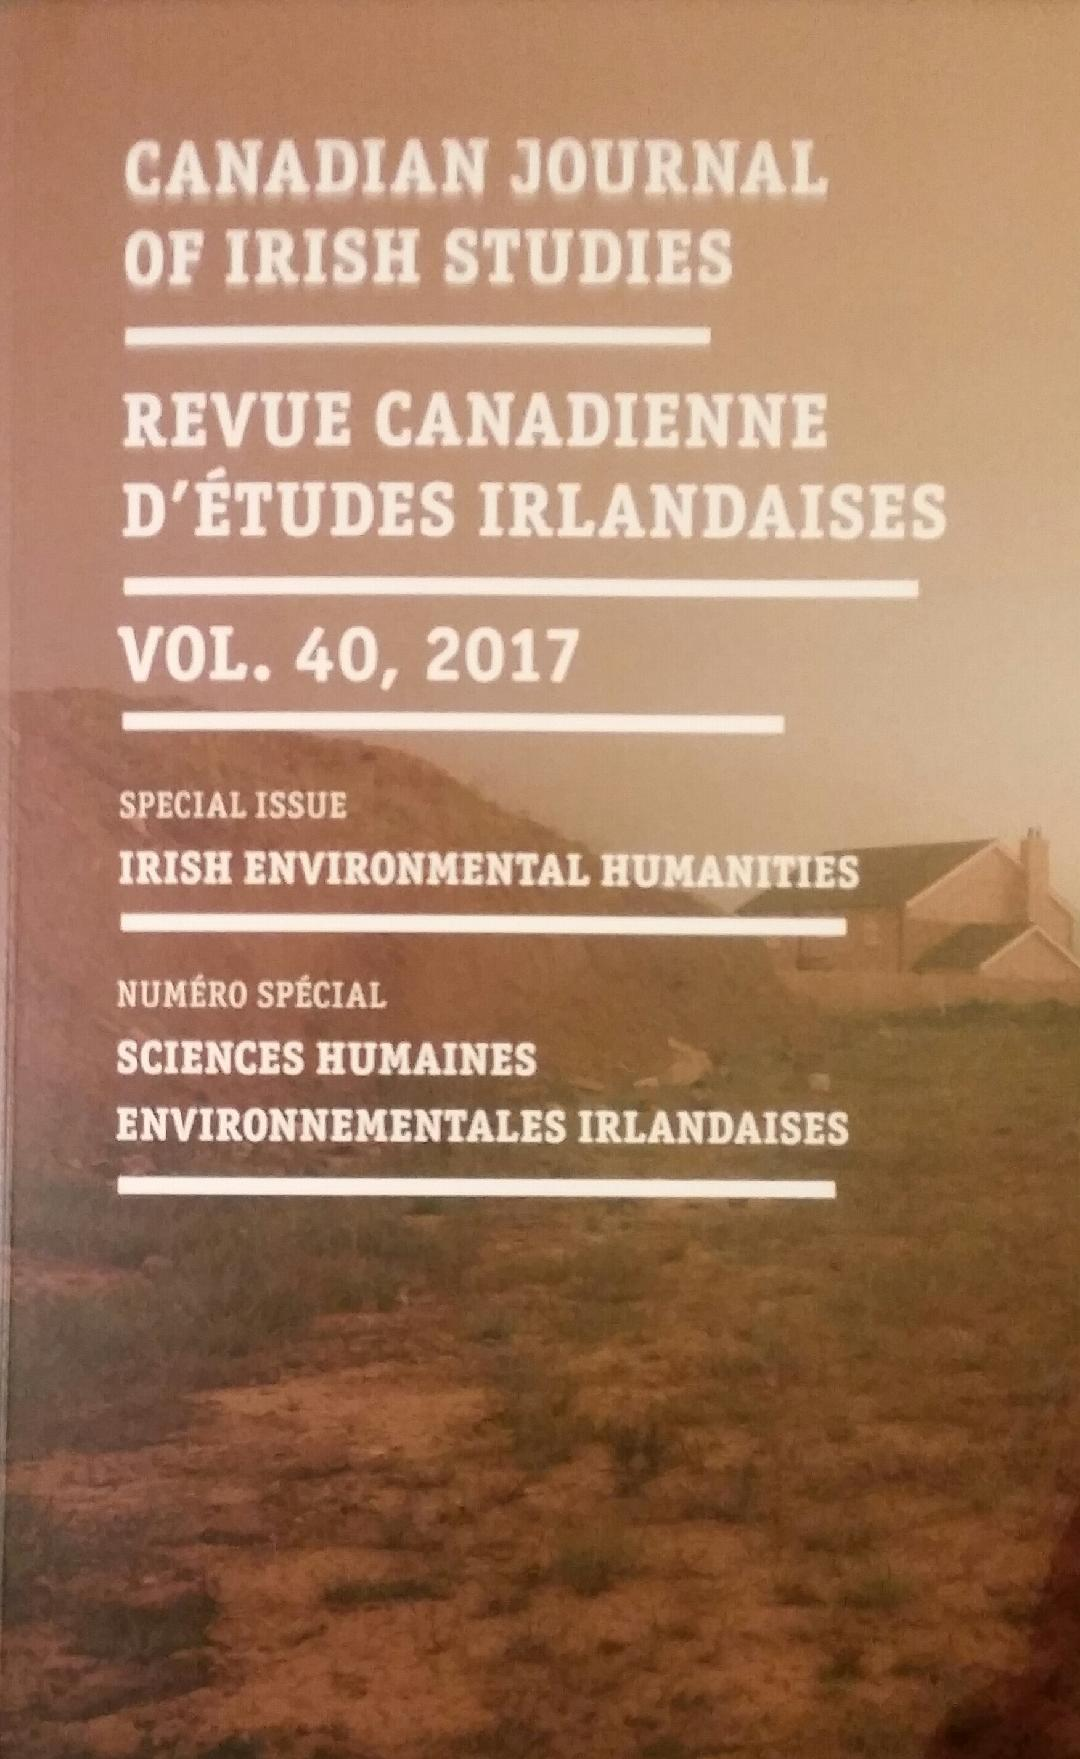 The School's Dr Maureen O'Connor has guest-edited the Canadian Journal of Irish Studies